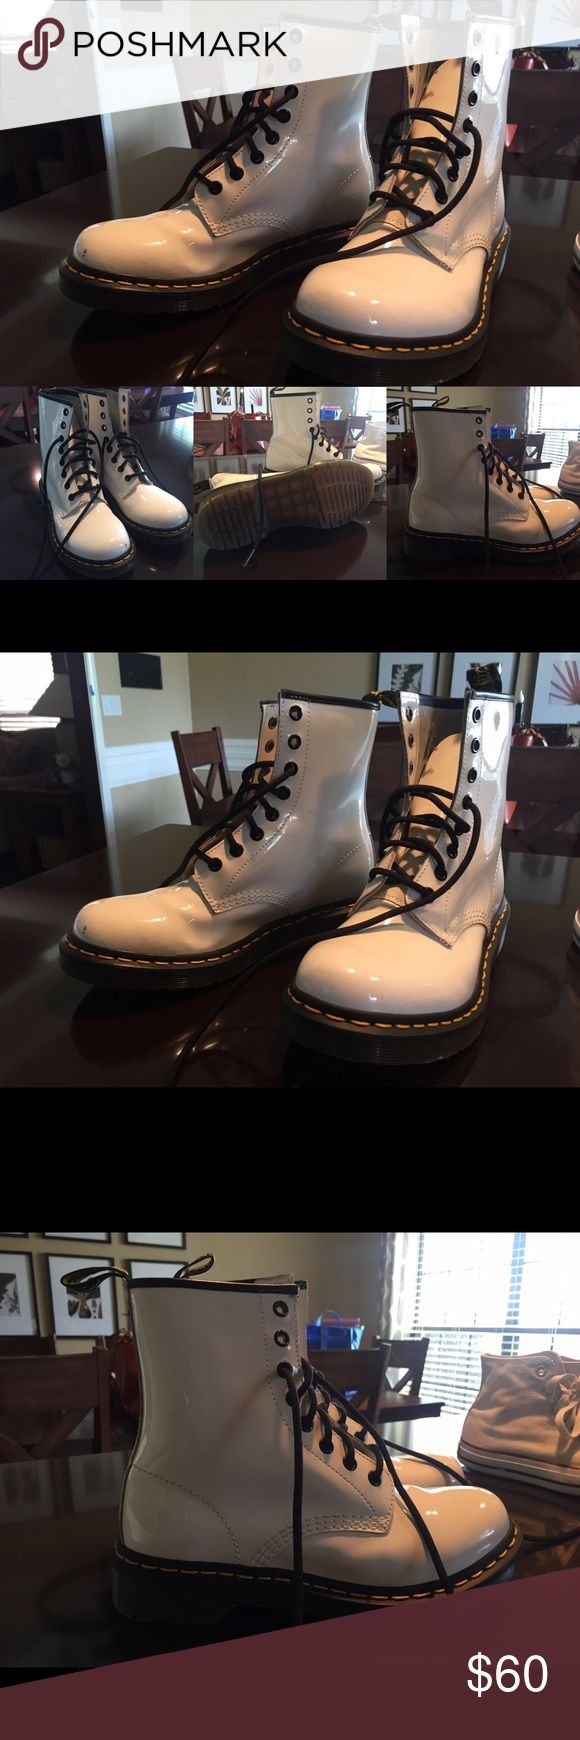 White Dr. Martin Boots - smooth leather Barely worn. A couple of scuff marks. Nothing too major. Dr. Martens Shoes Lace Up Boots